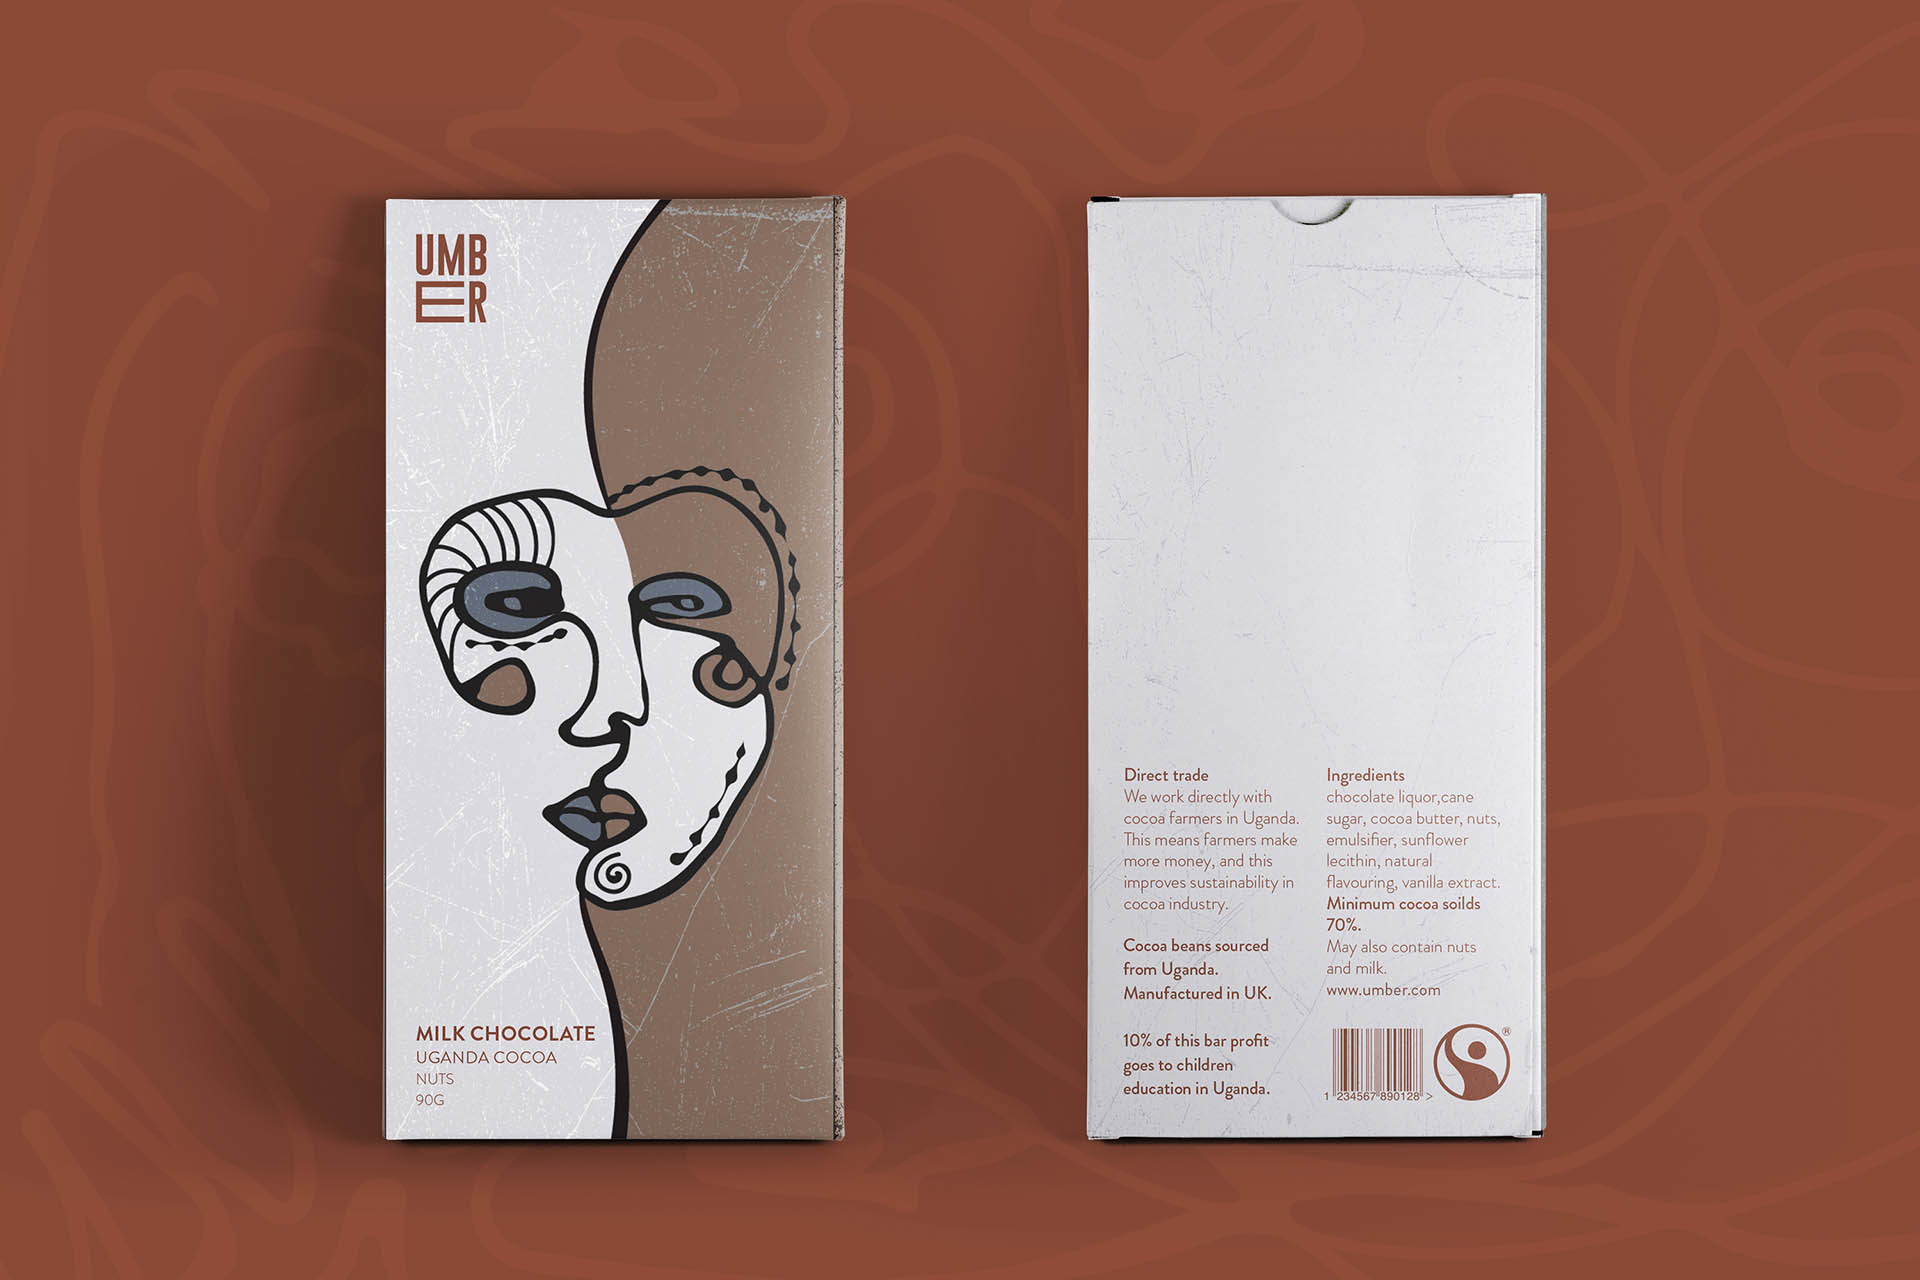 Visual identity and packaging for Umber a chocolate brand working with cocoa farmers to improve their income and sustainability